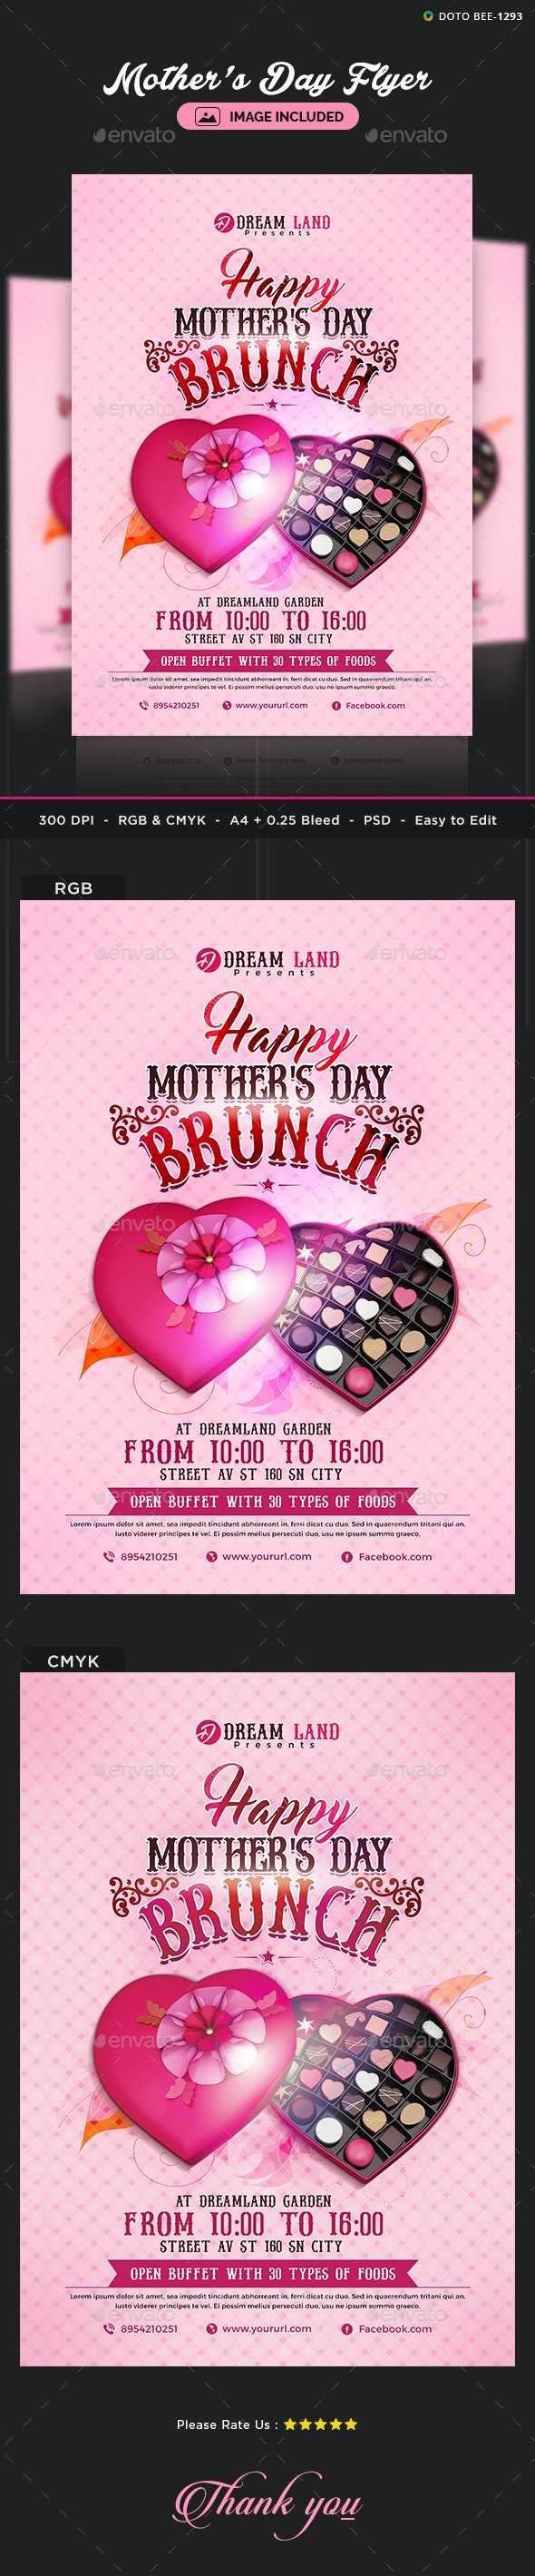 Mothers Day Flyer Template - Events Flyers